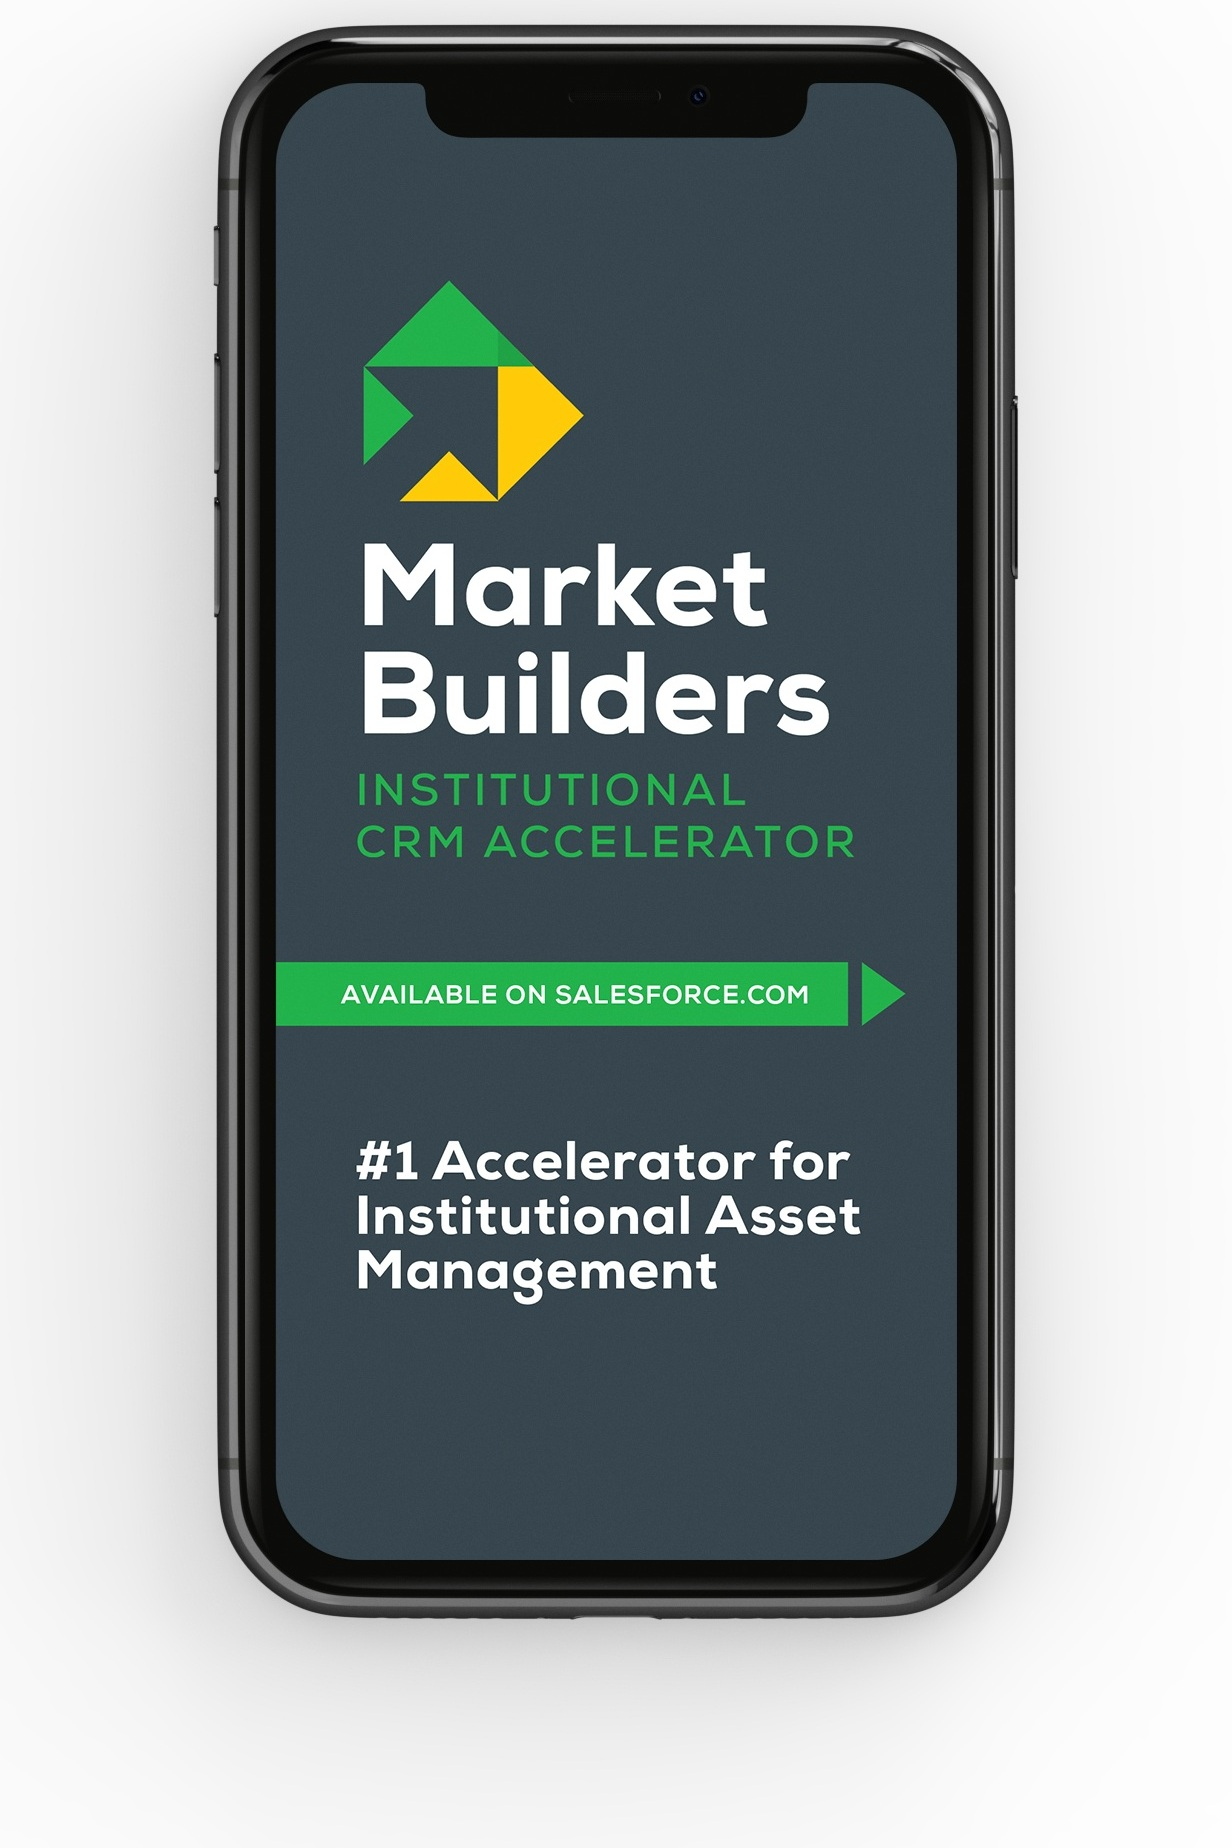 marketbuilders-iphoneXfront.jpg